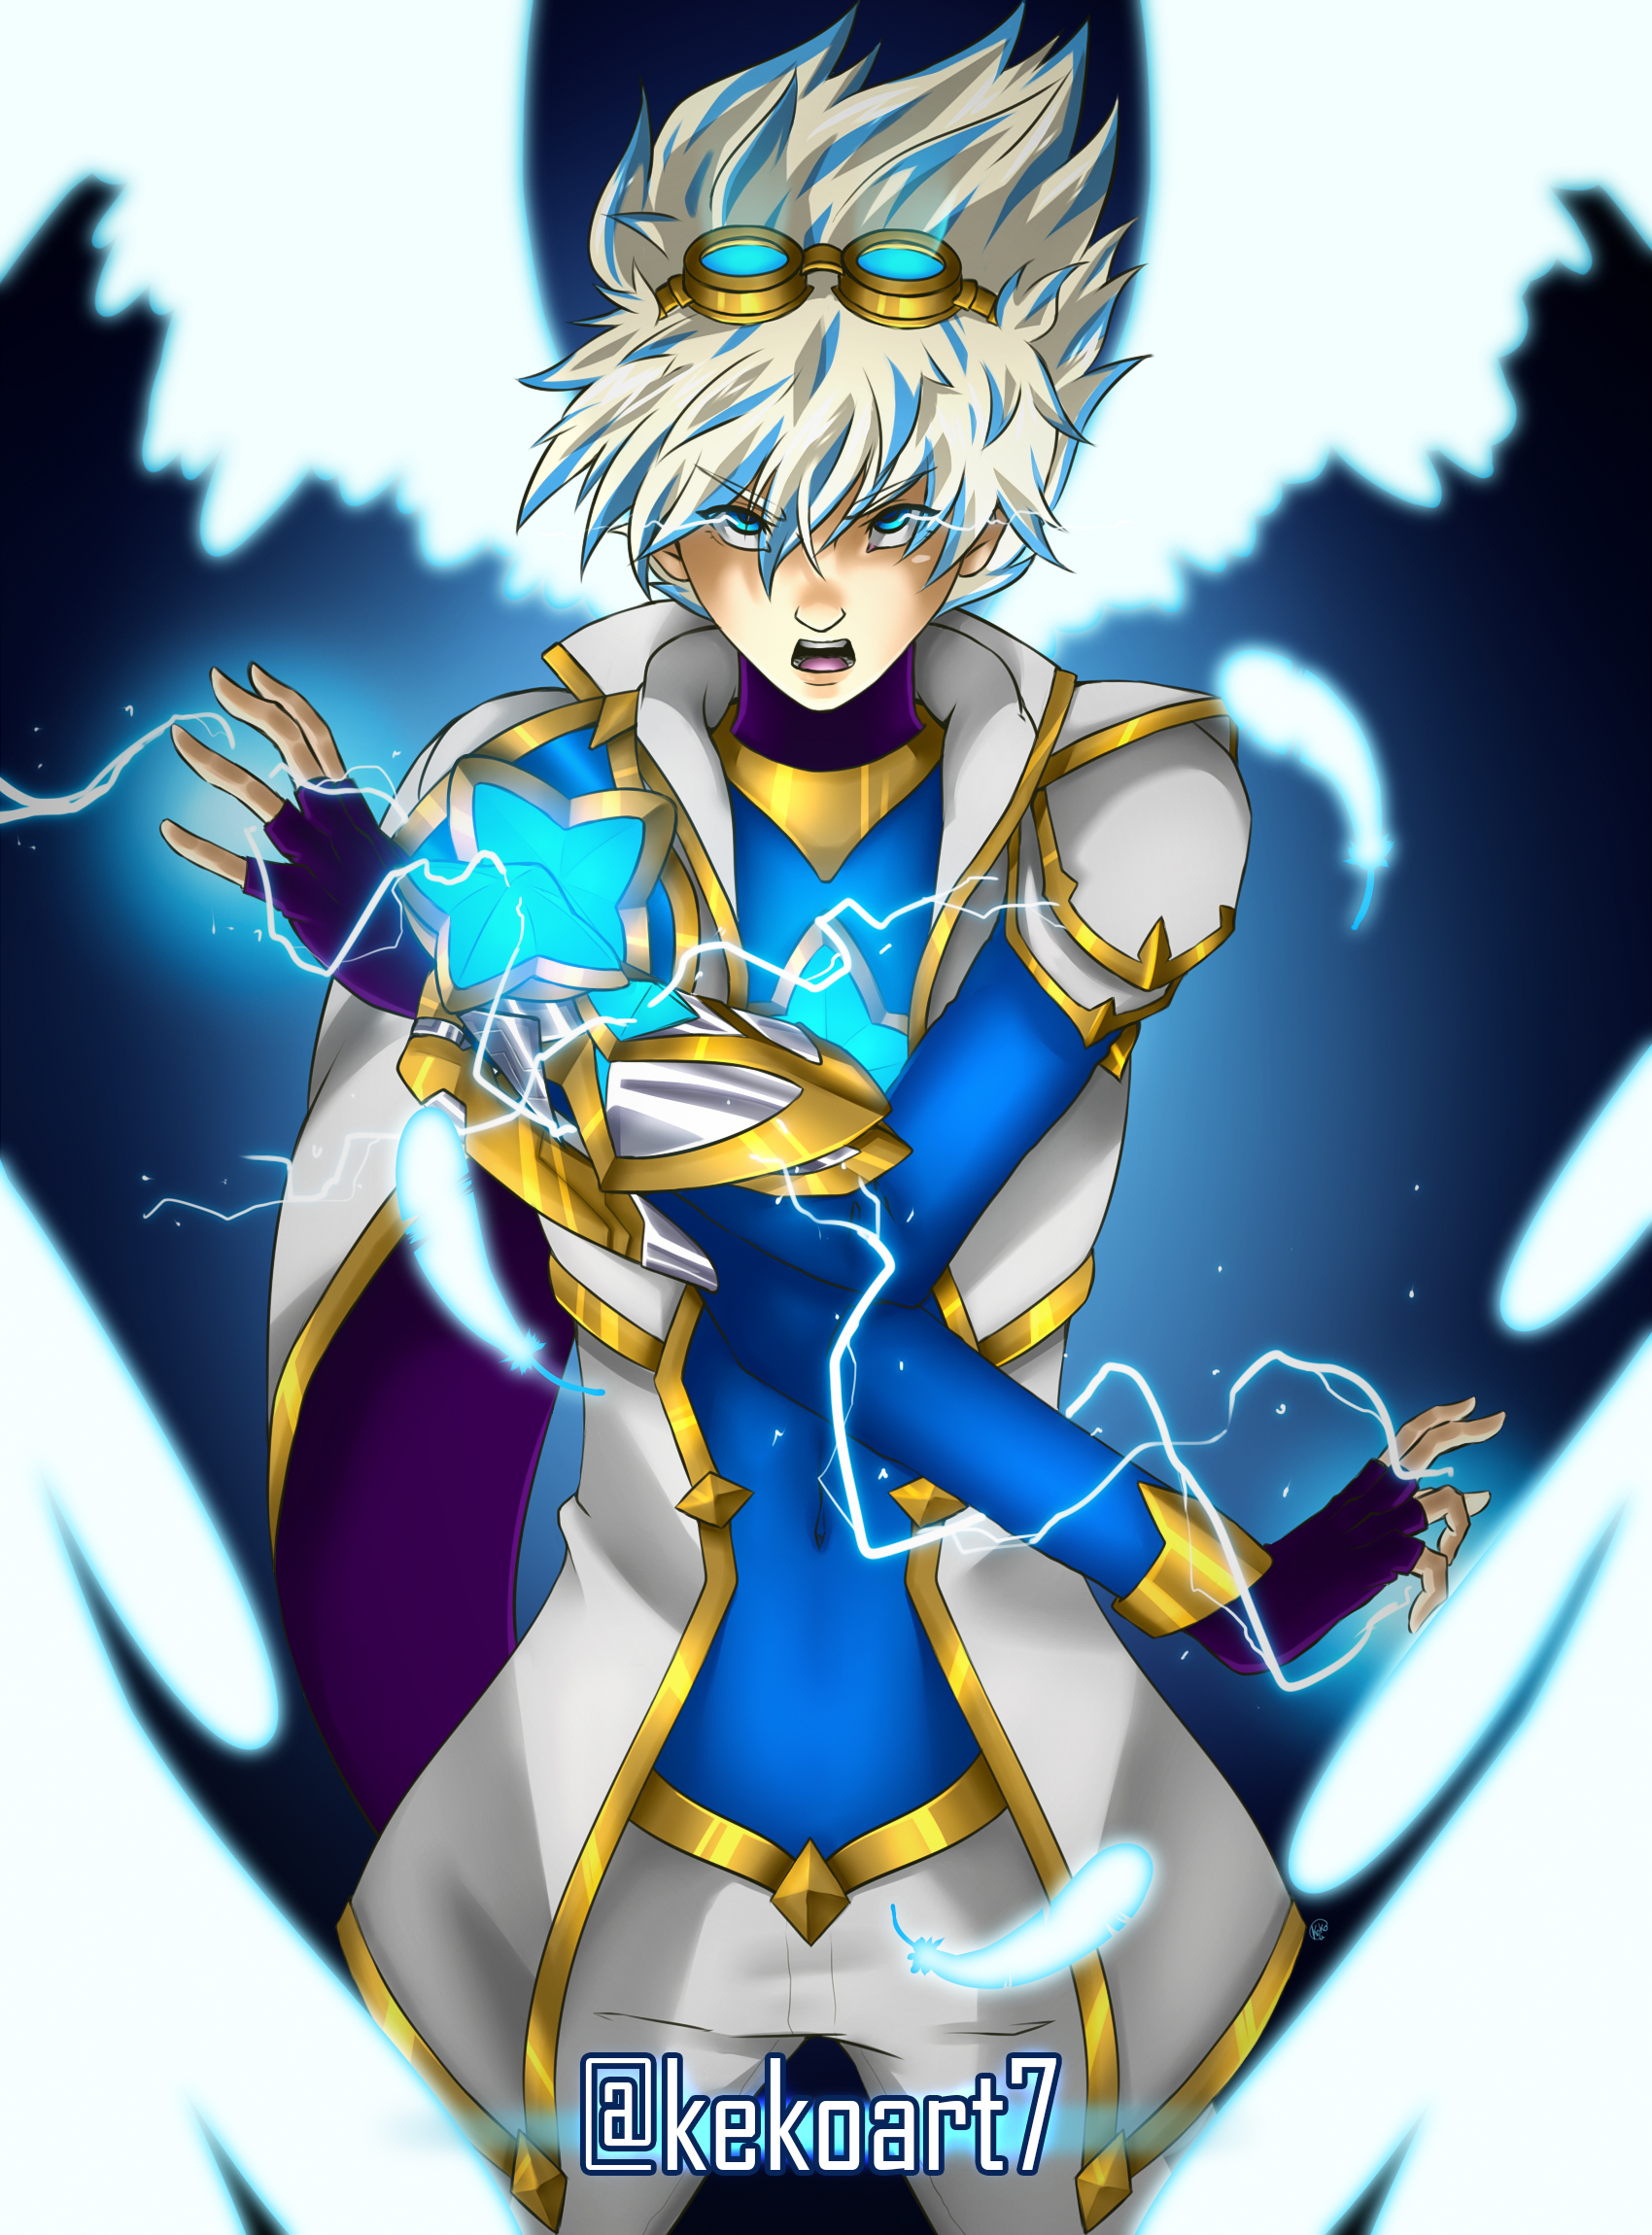 Star Guardian Ezreal by KekoArt97 on DeviantArt